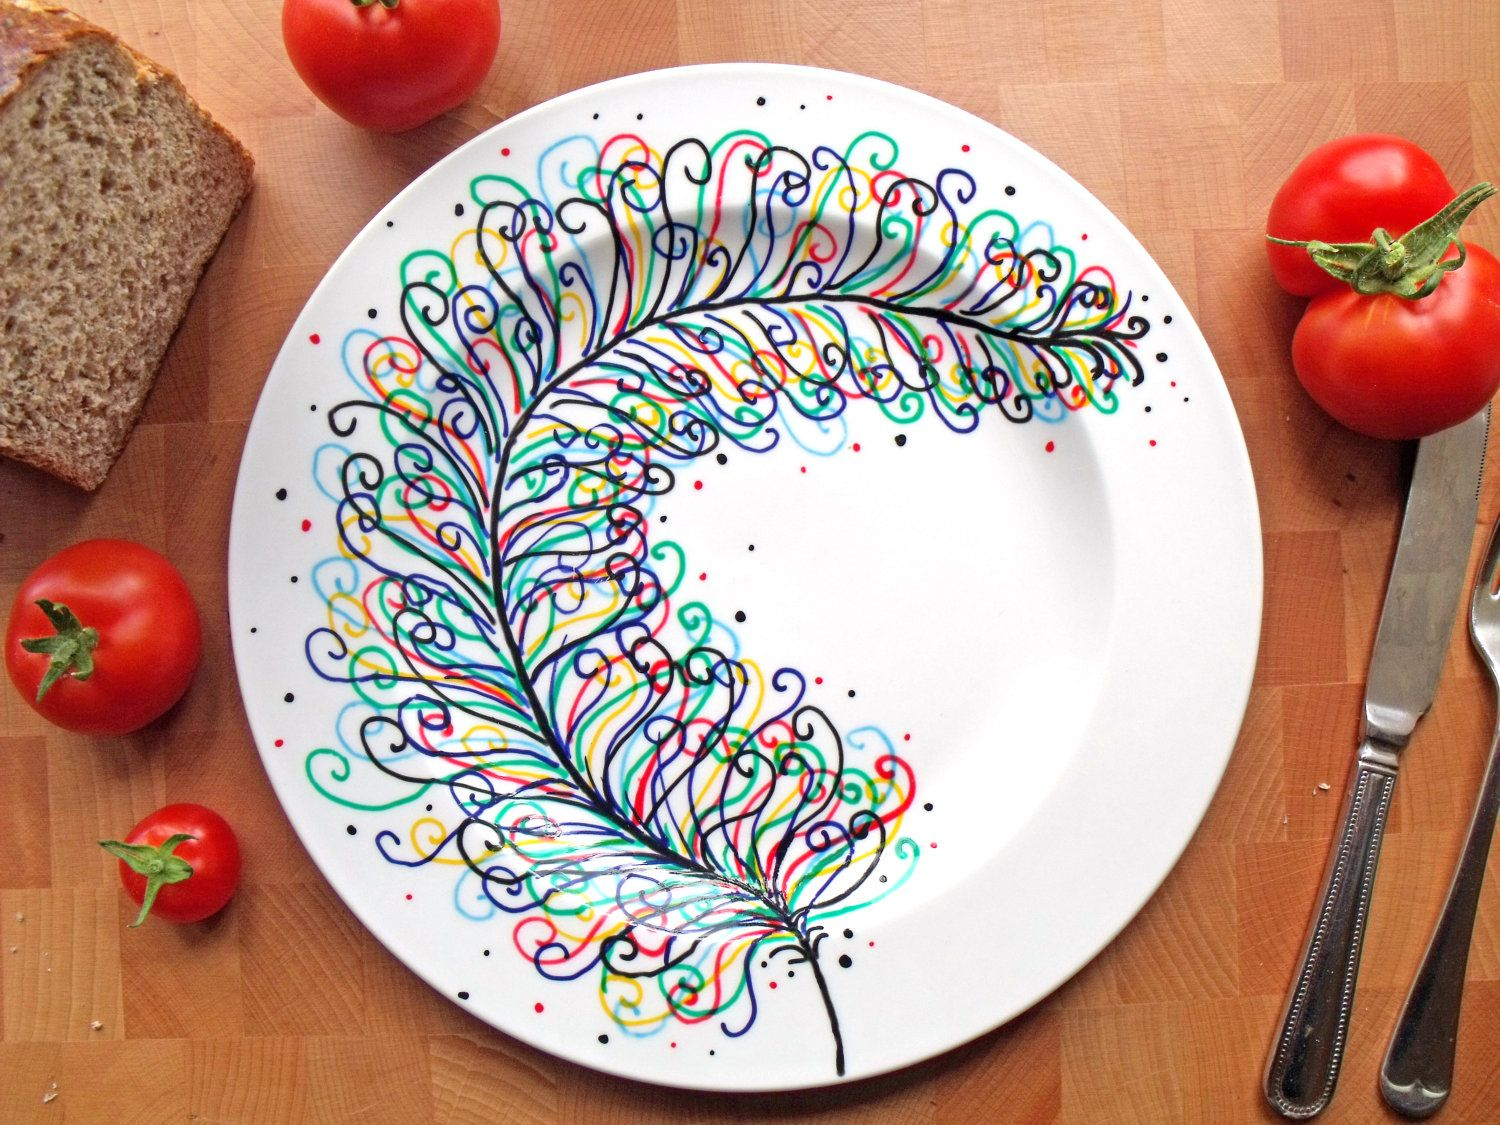 Hand Painted Porcelain Dinner Plate - Rainbow Feather - White Ceramic. £30.00 via Etsy. & Hand Painted Porcelain Dinner Plate - Rainbow Feather - White ...